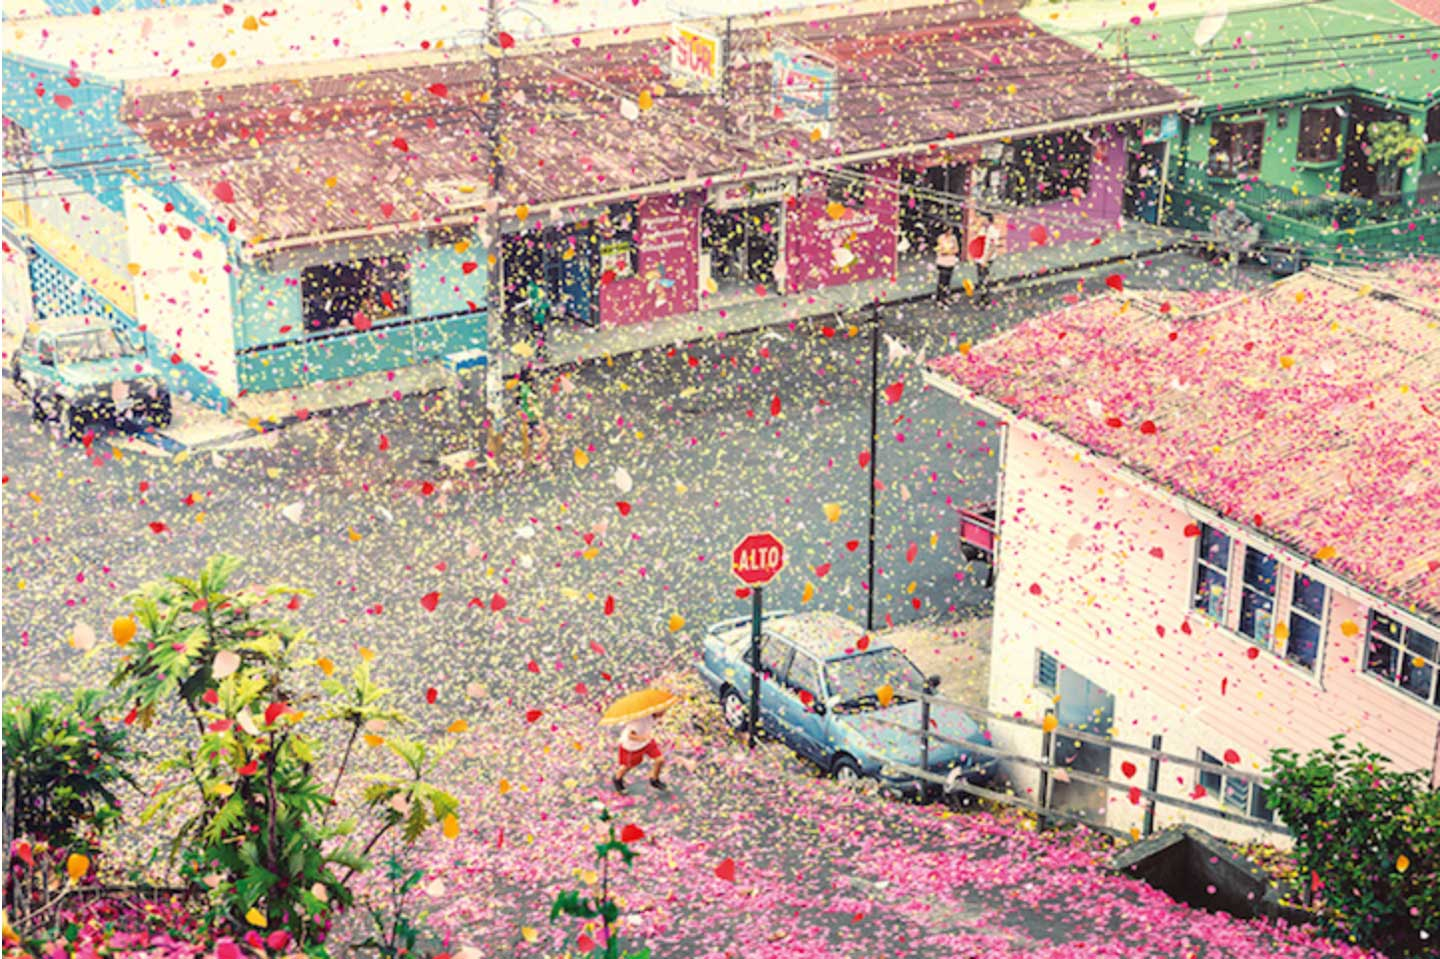 8 Million Flower Petals Over Costa Rica by Nick Meek for Sony | Yellowtrace